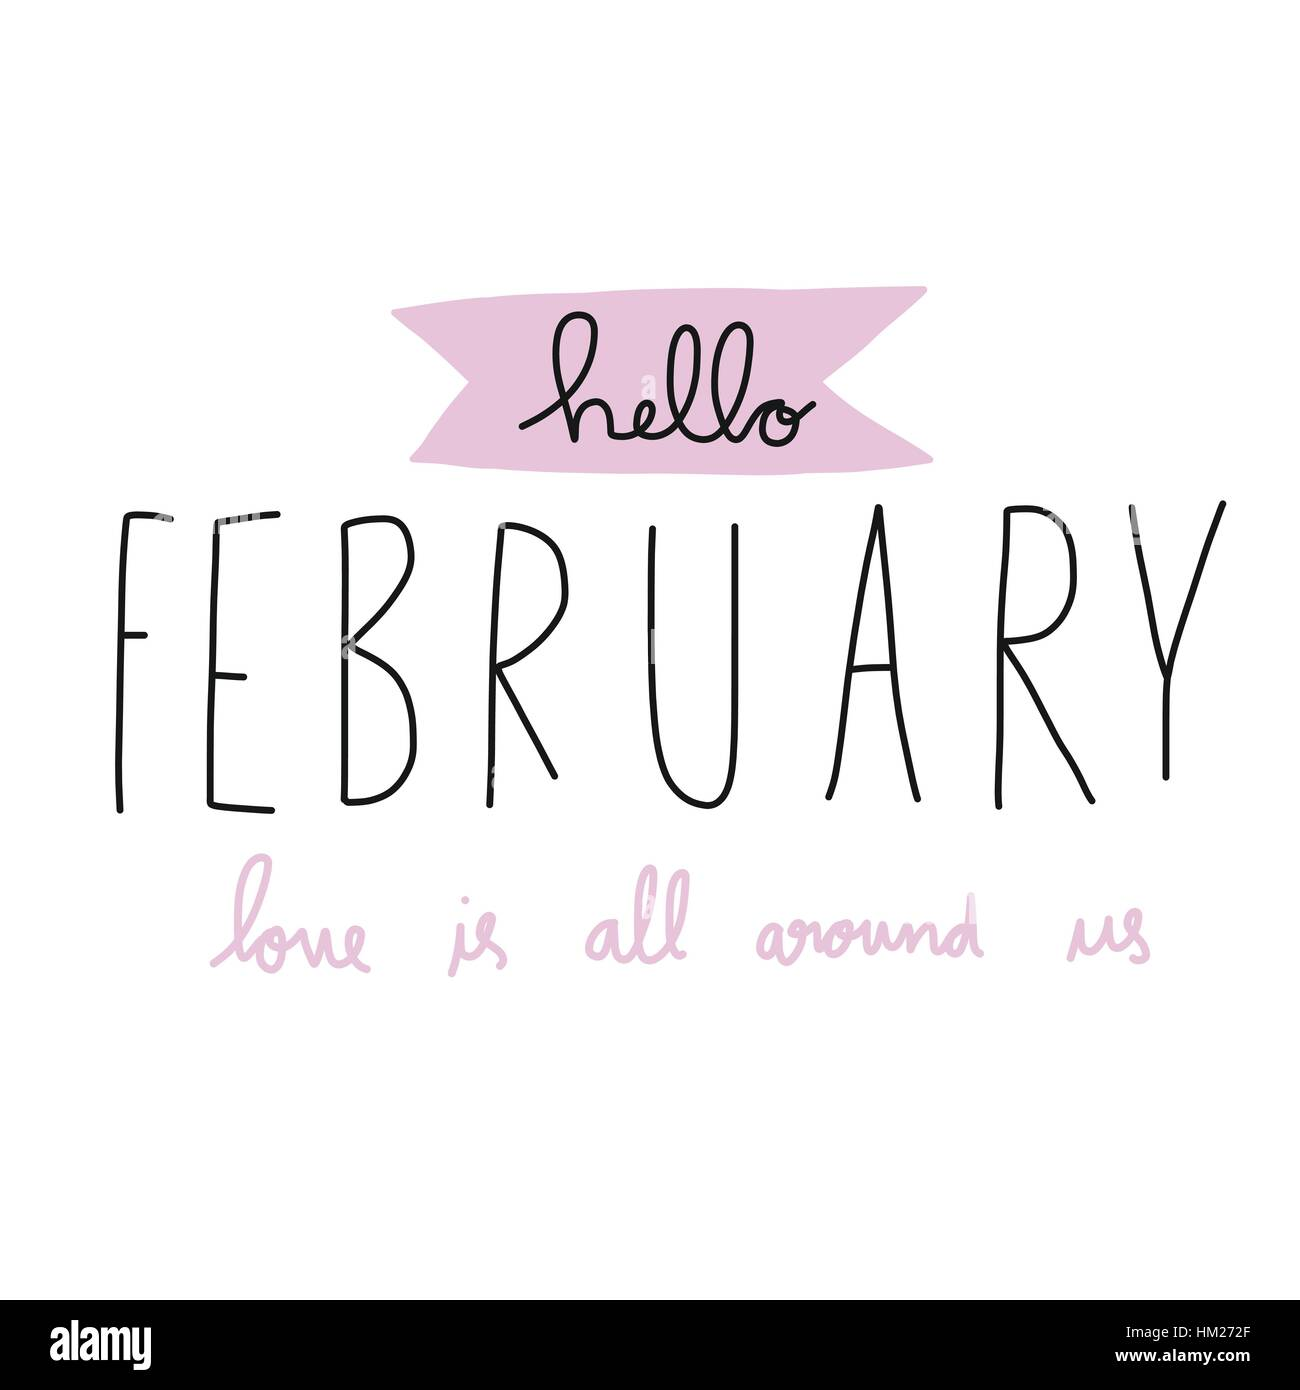 Love Is All Around Wallpaper : Hello February love is all around us word illustration on white Stock Vector Art & Illustration ...